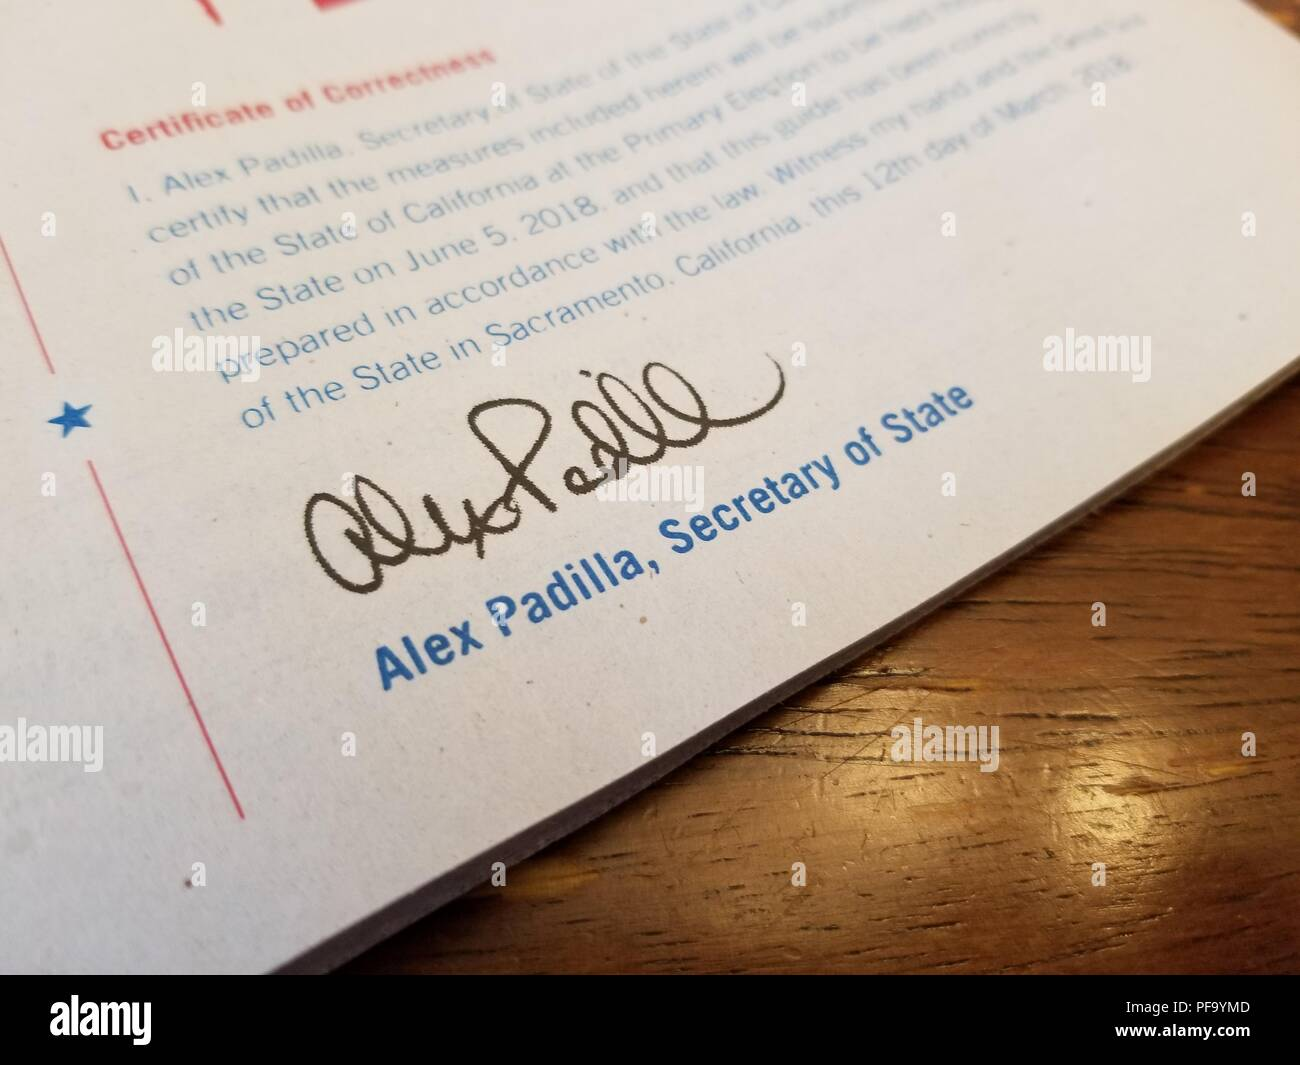 Close-up of reproduced signature for California Secretary of State Alex Padilla on election materials for the California midterm primary elections, May 11, 2018. () - Stock Image